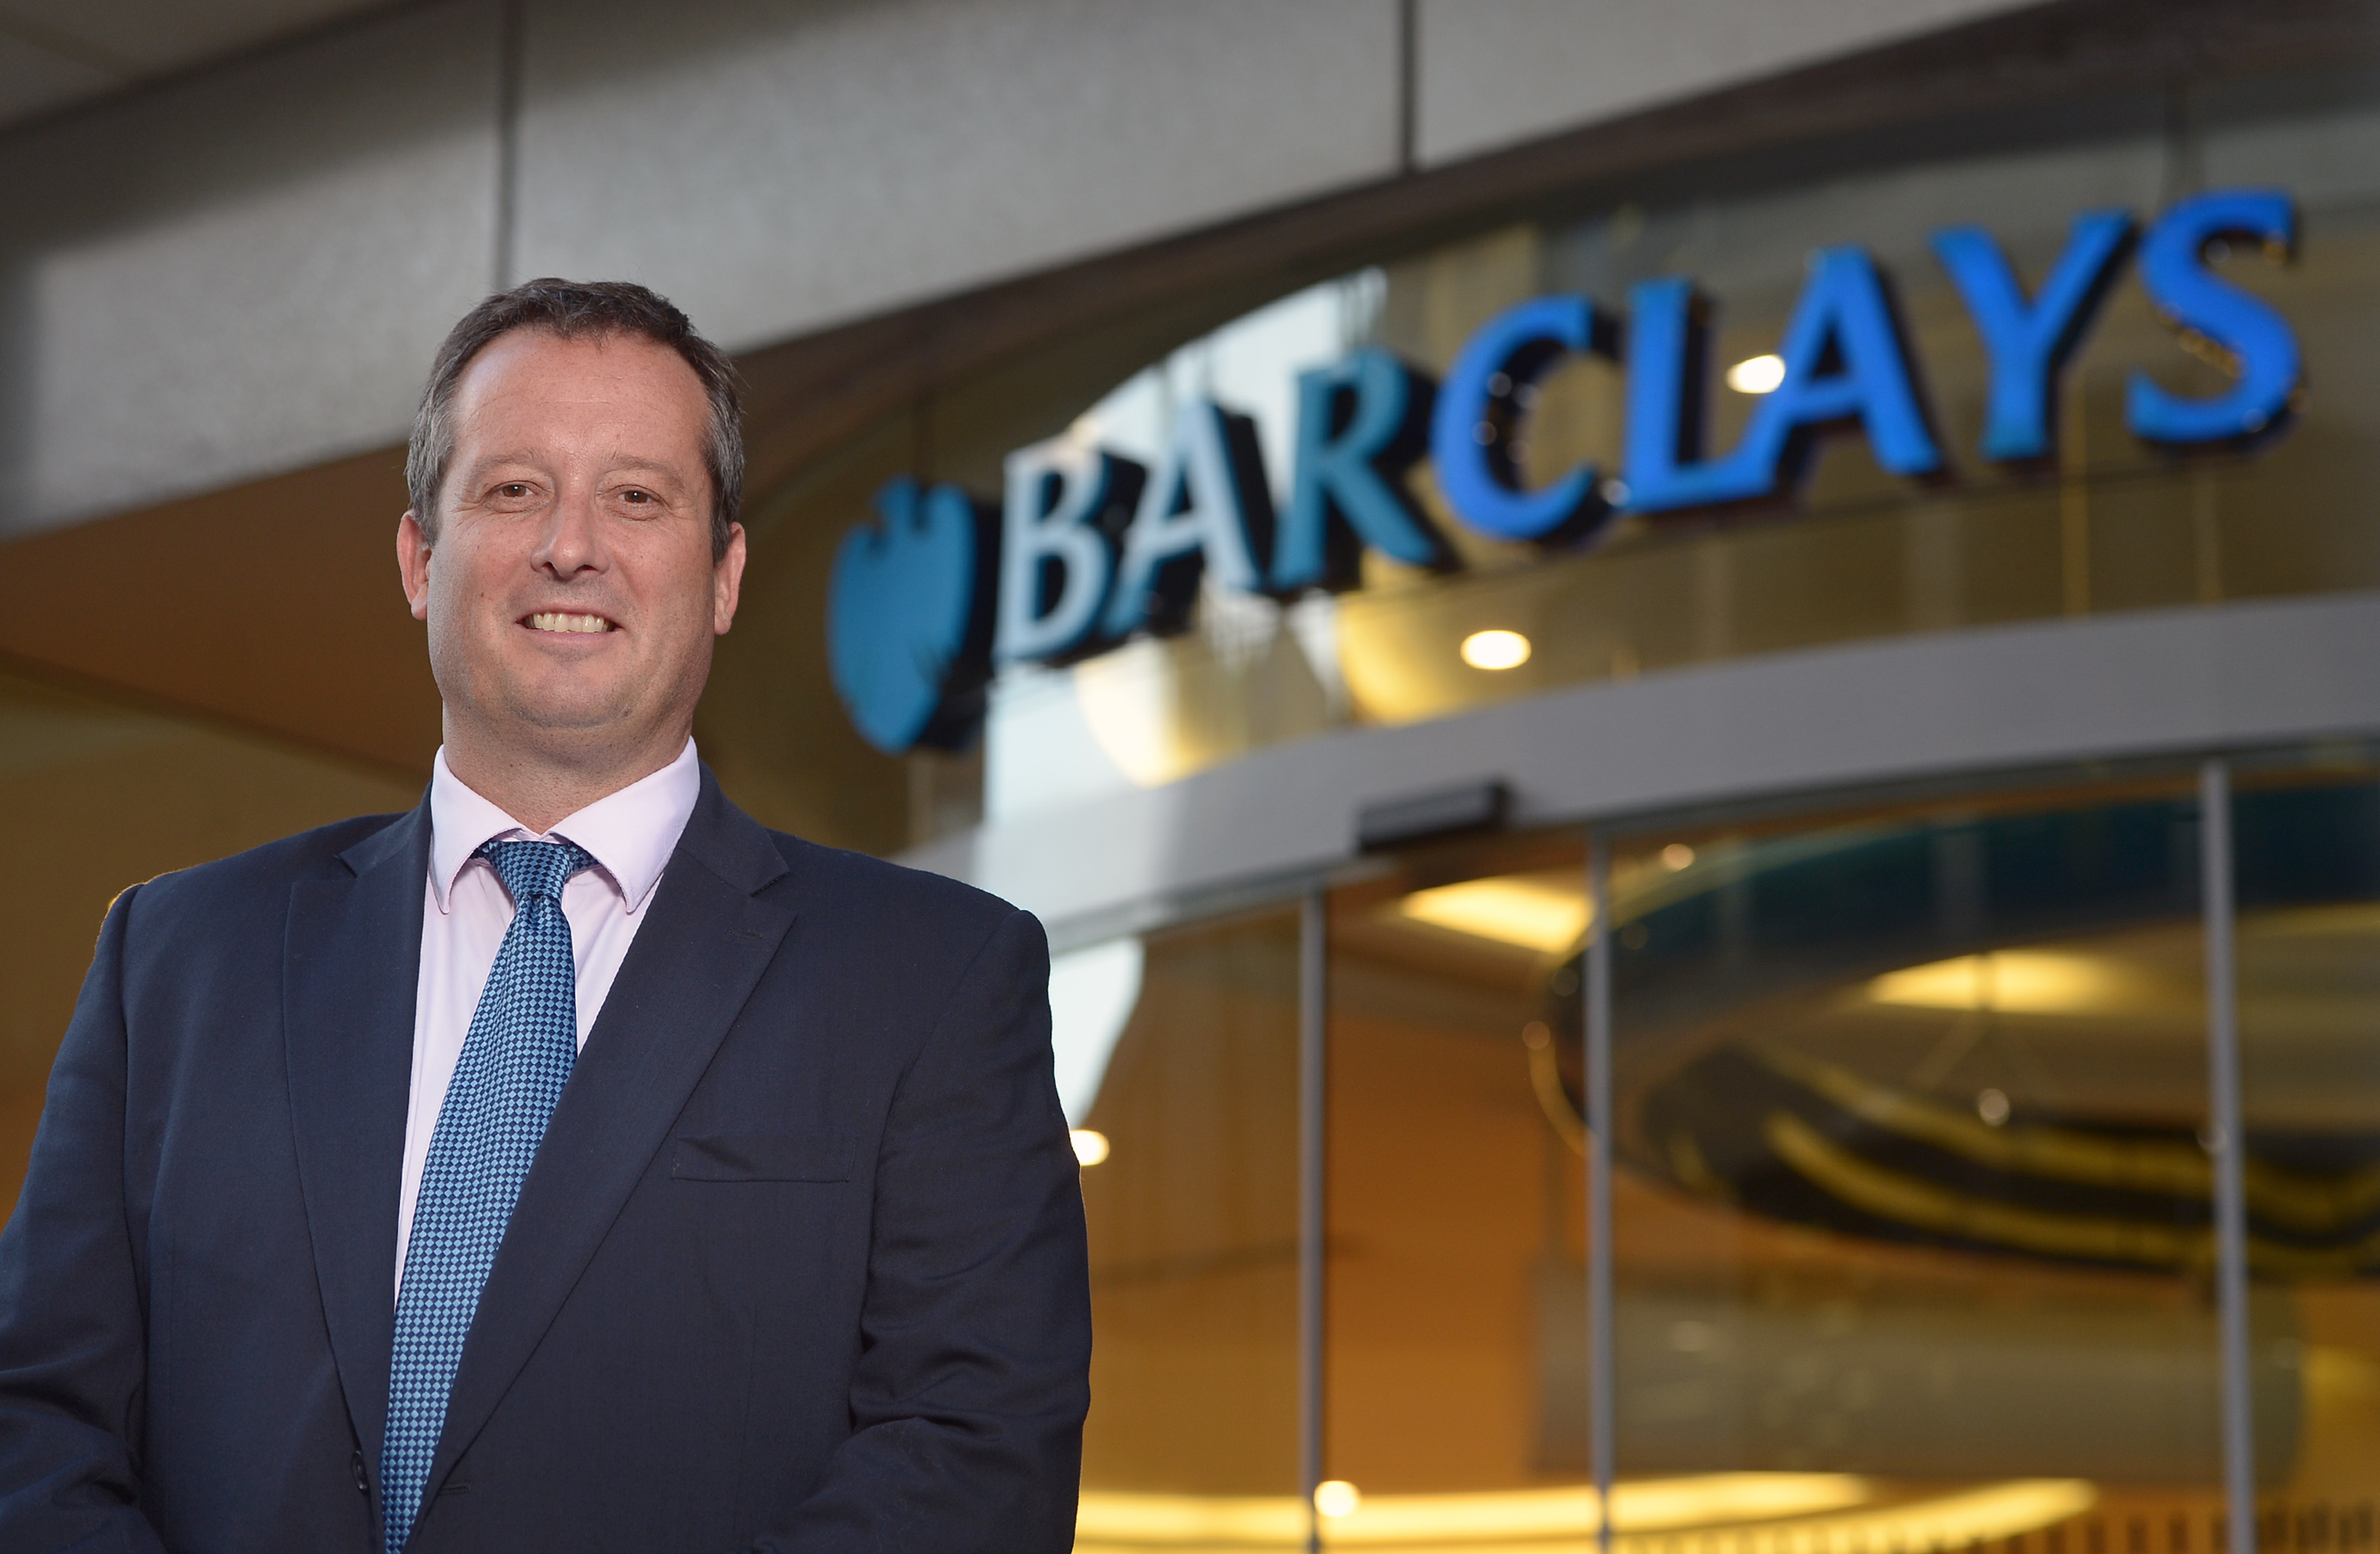 Barclays Jamie Grant - Head of Corporate Banking for Barclays Scotland & Northern Ireland. Neil Hanna Photography www.neilhannaphotography.co.uk 07702 246823